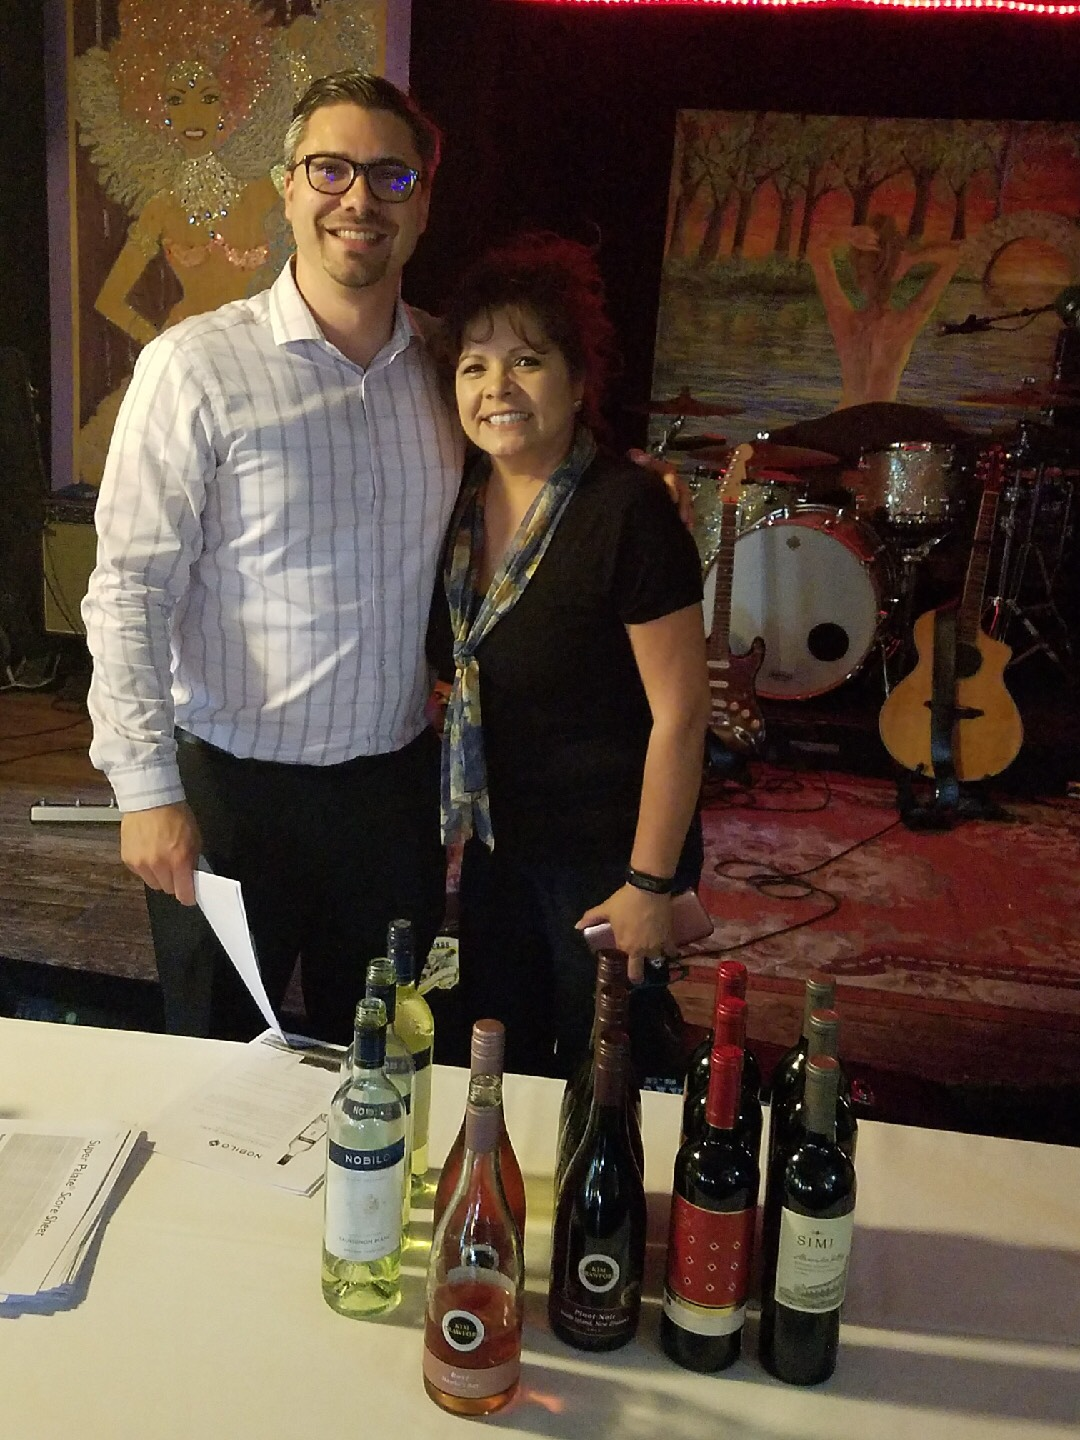 Wine Tasting with Mathieu and Republic National Distributing Co. #winetasting #thecrazywineladies